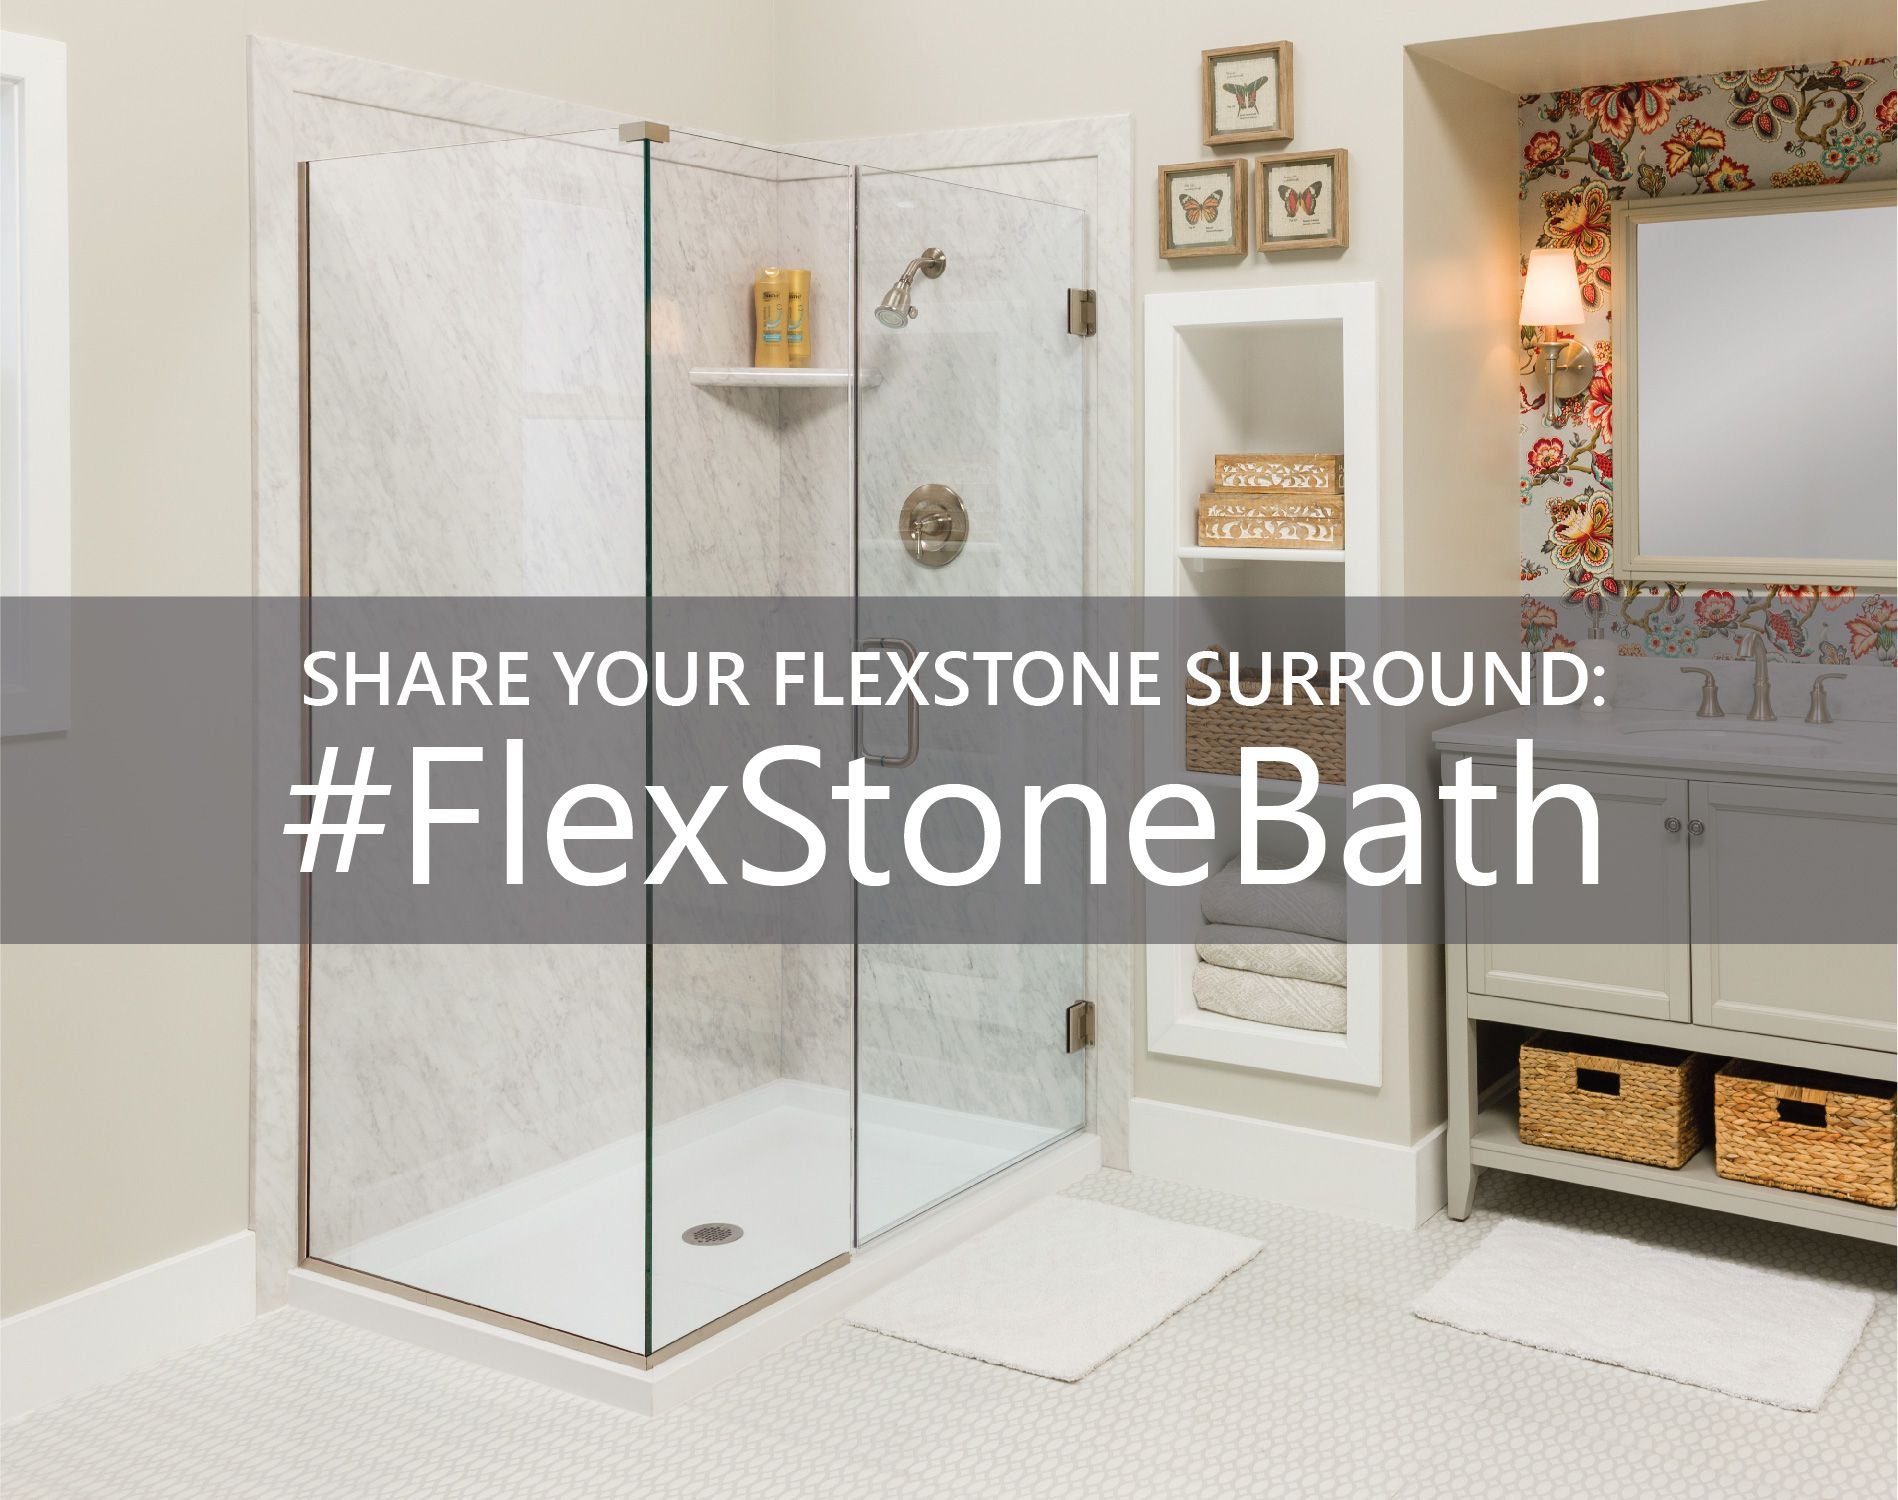 Share Your Flexstone Surround Shower Surround Flooring Store Stone Bath